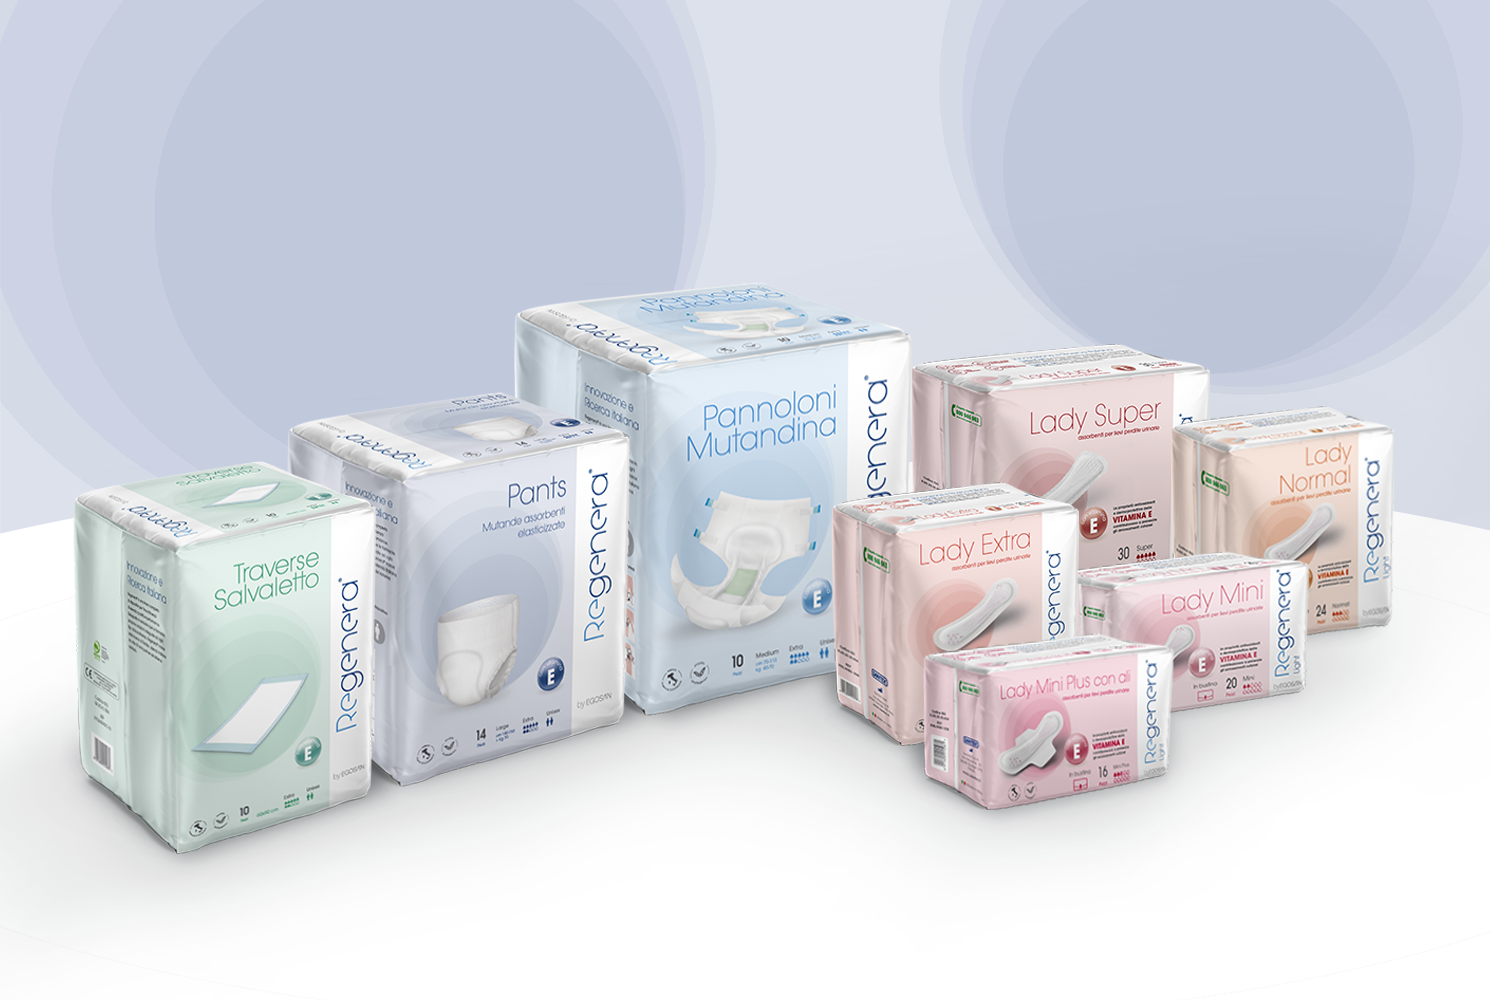 REGENERA INCLUDES SUITABLE SOLUTIONS BOTH FOR LIGHT INCONTINENCE AND FOR HEAVY INCONTINENCE